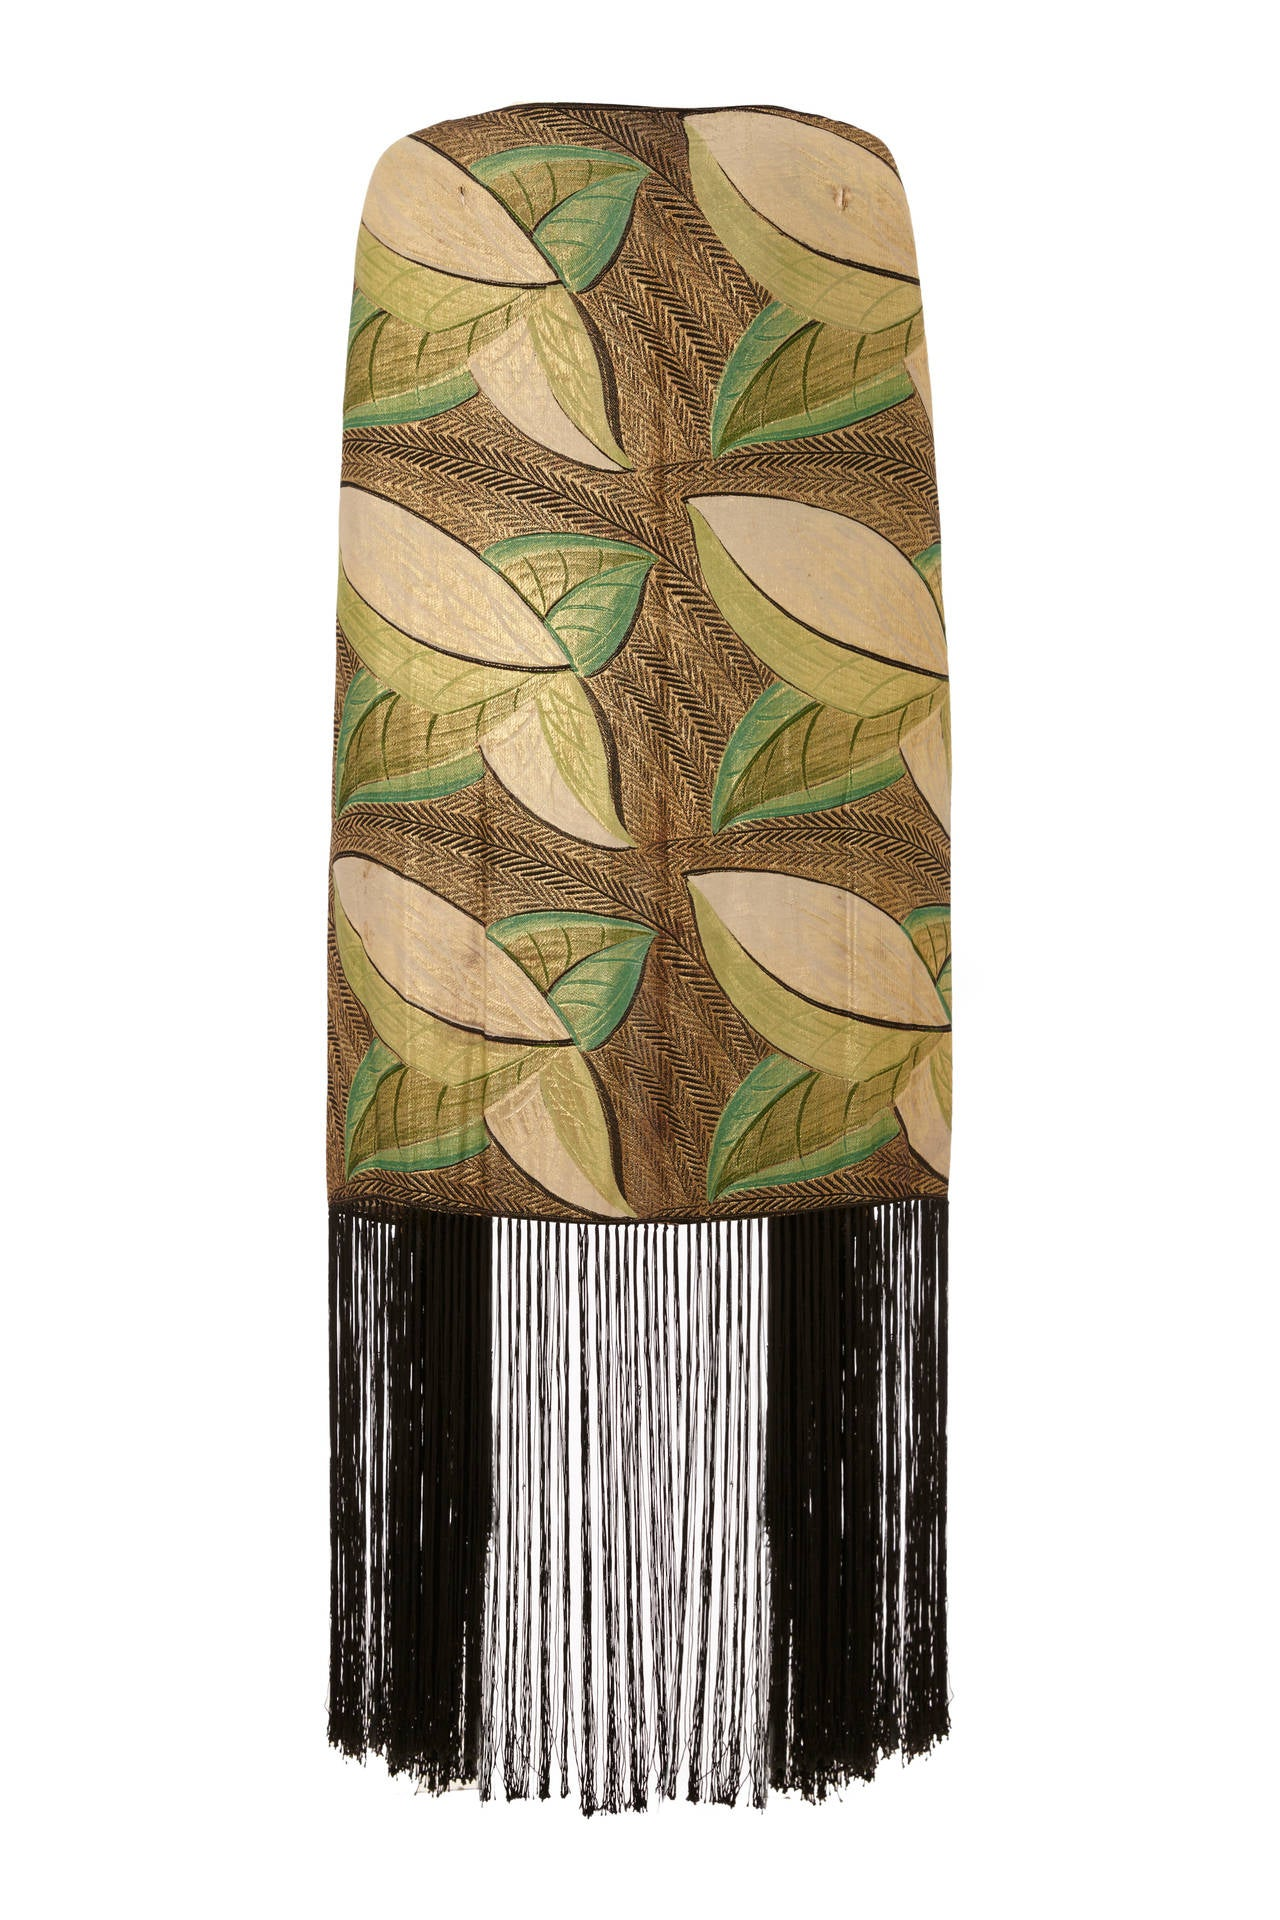 1920s/1930s Lame Scarf with Leaf Motif and Tassels 2